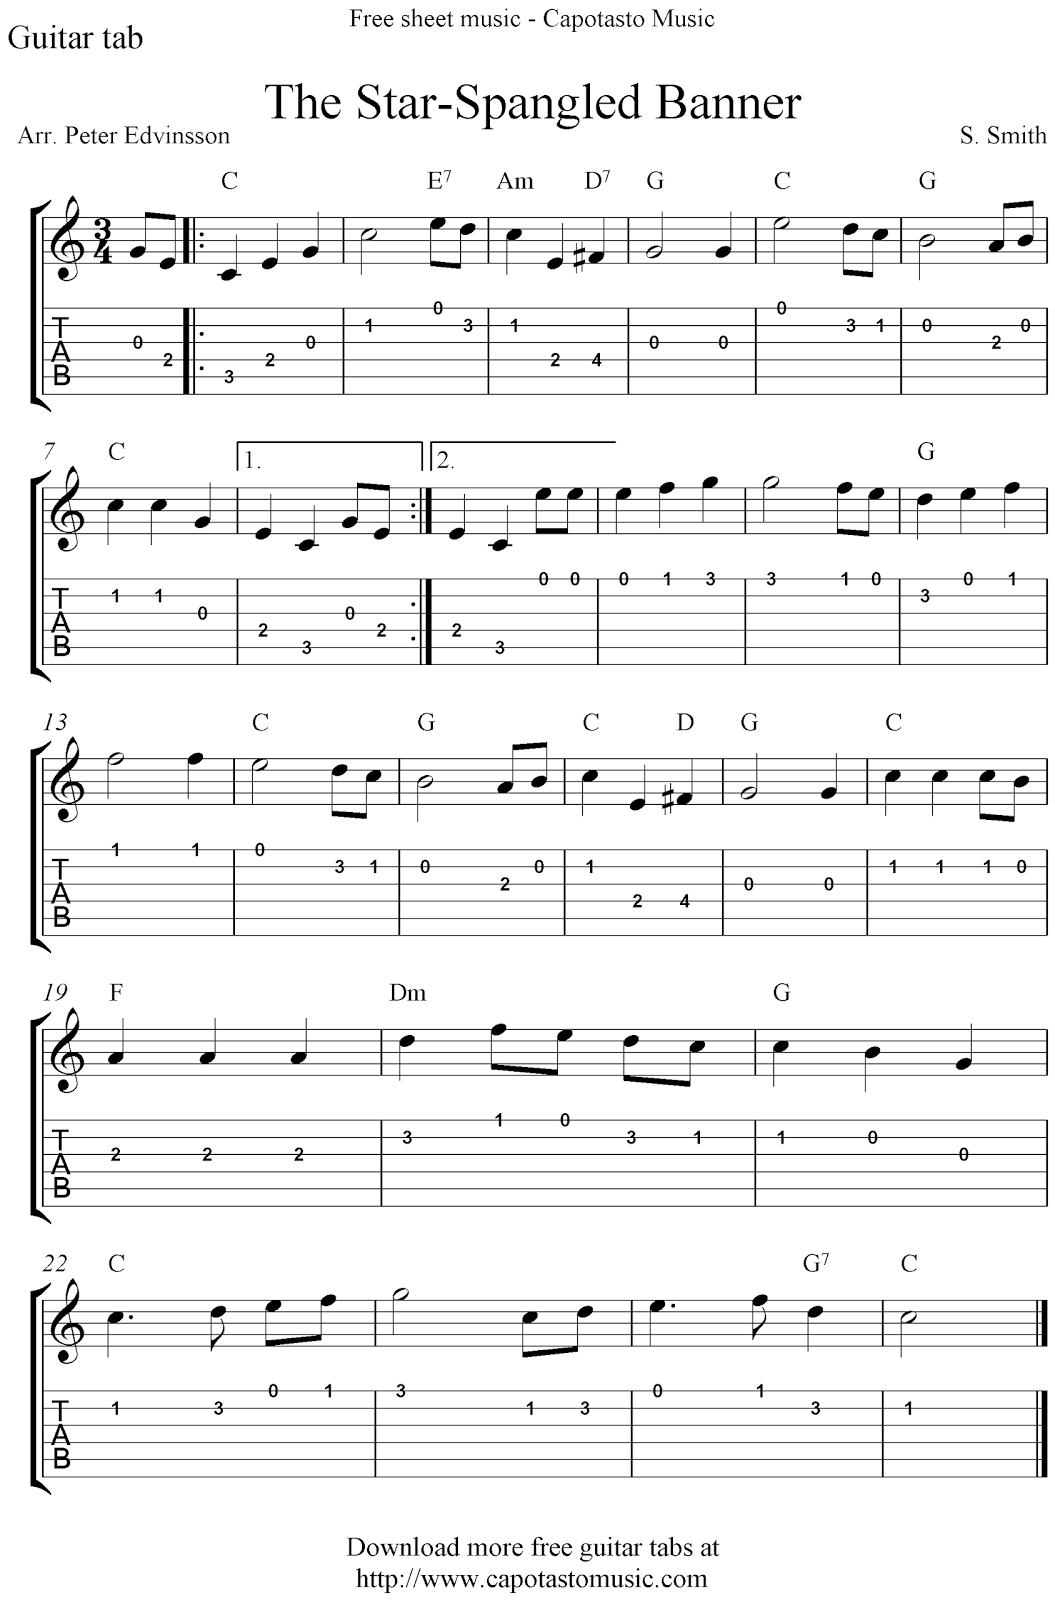 Free Sheet Music Scores: The Star-Spangled Banner, Free Guitar - Free Guitar Sheet Music For Popular Songs Printable